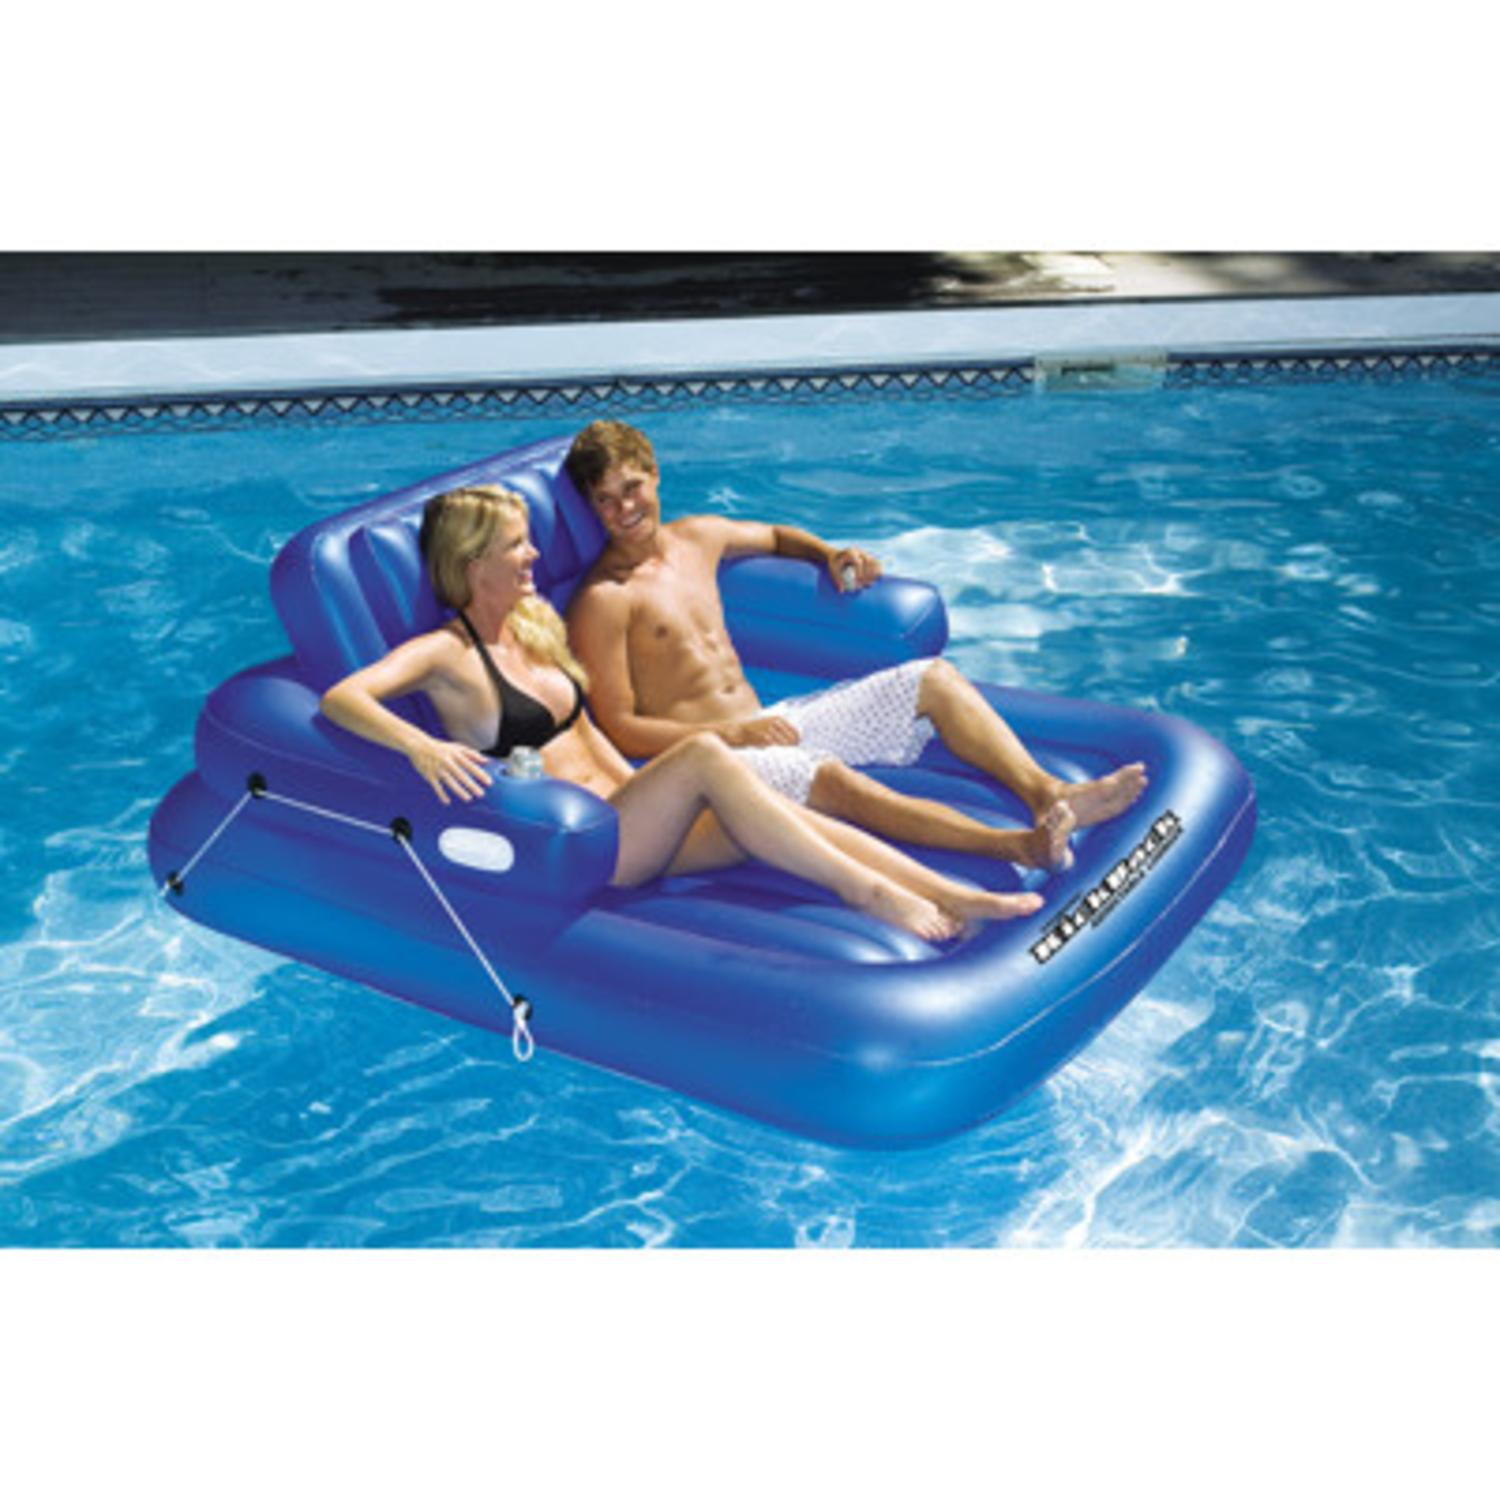 Water Sports Inflatable Kickback Adjustable Swimming Pool Lounger for 2 People